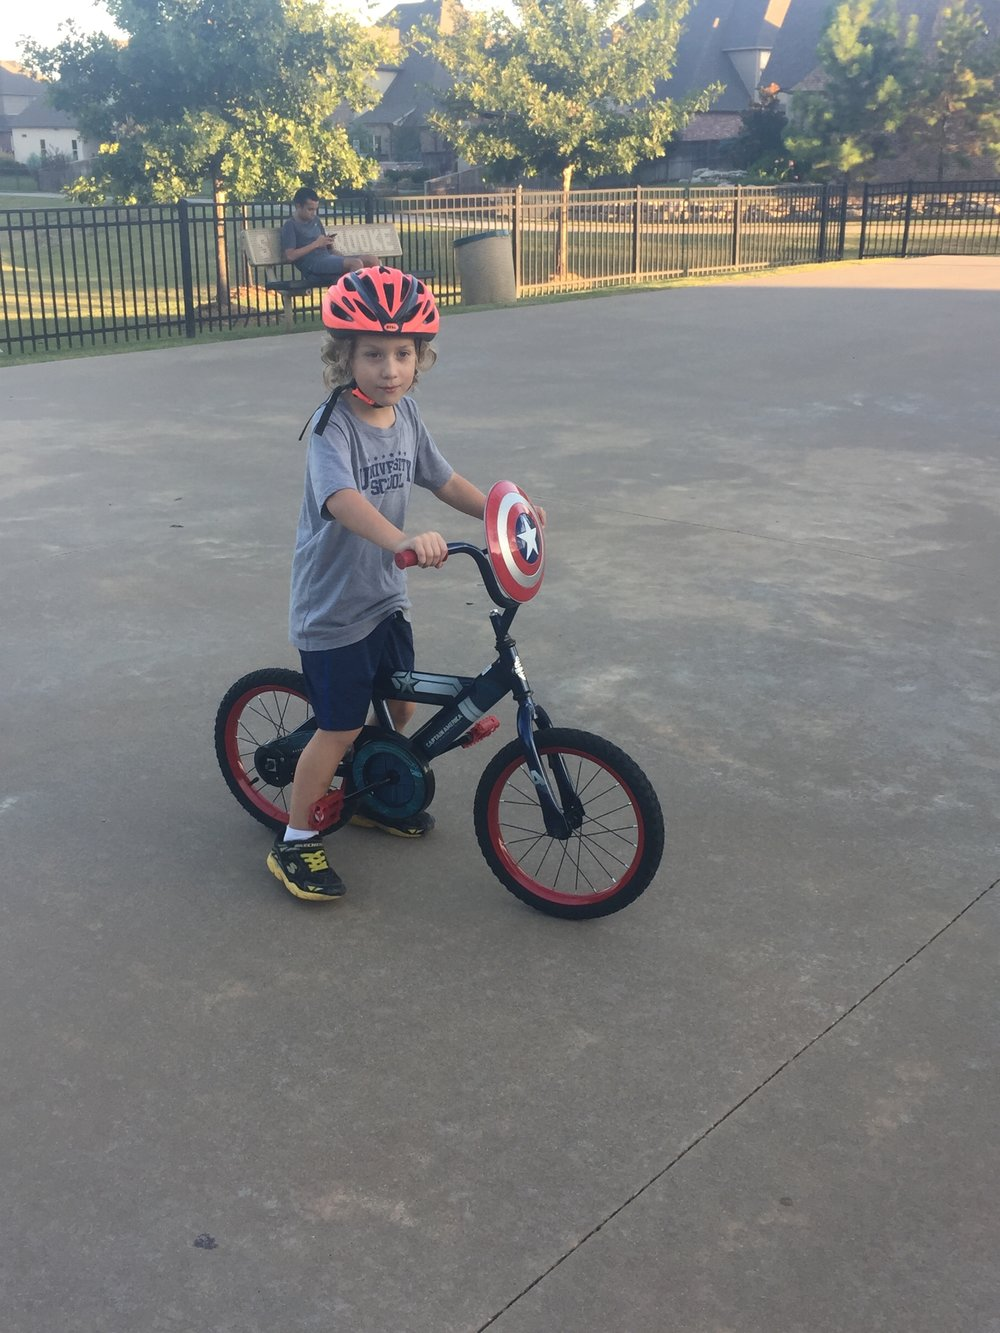 October 2017 No training wheels!!!